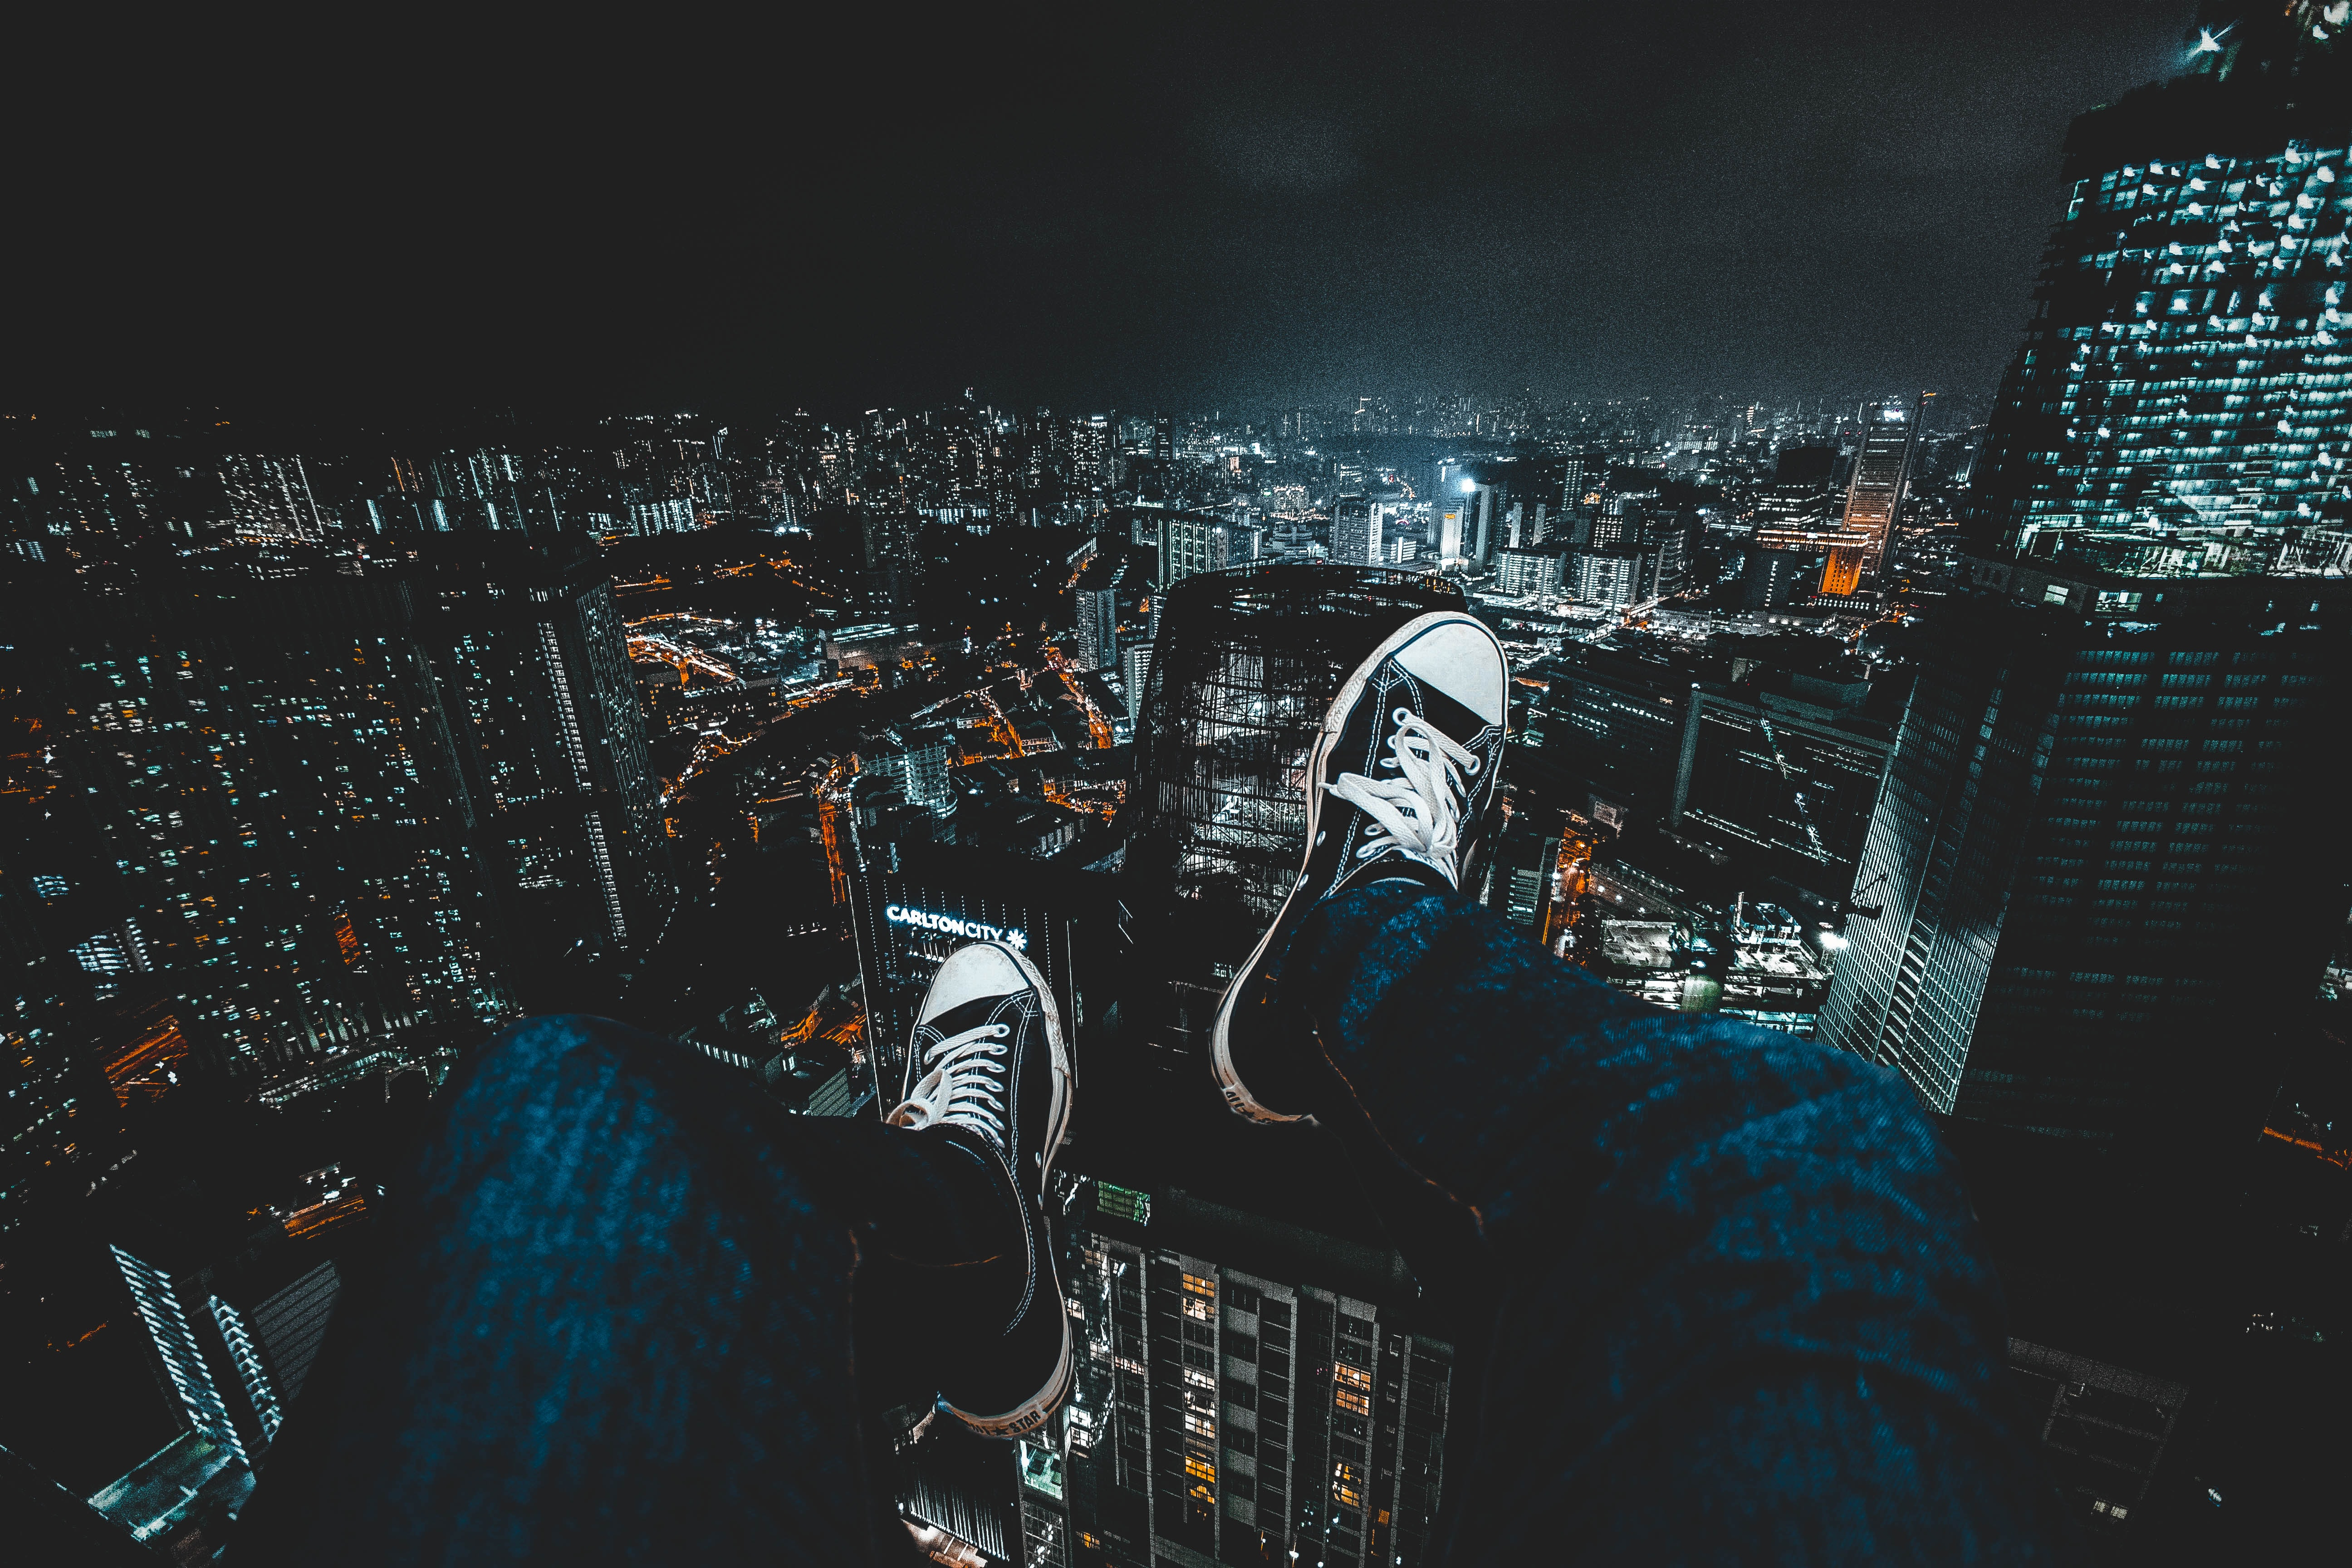 person wearing blue jeans facing cityscape during nighttime